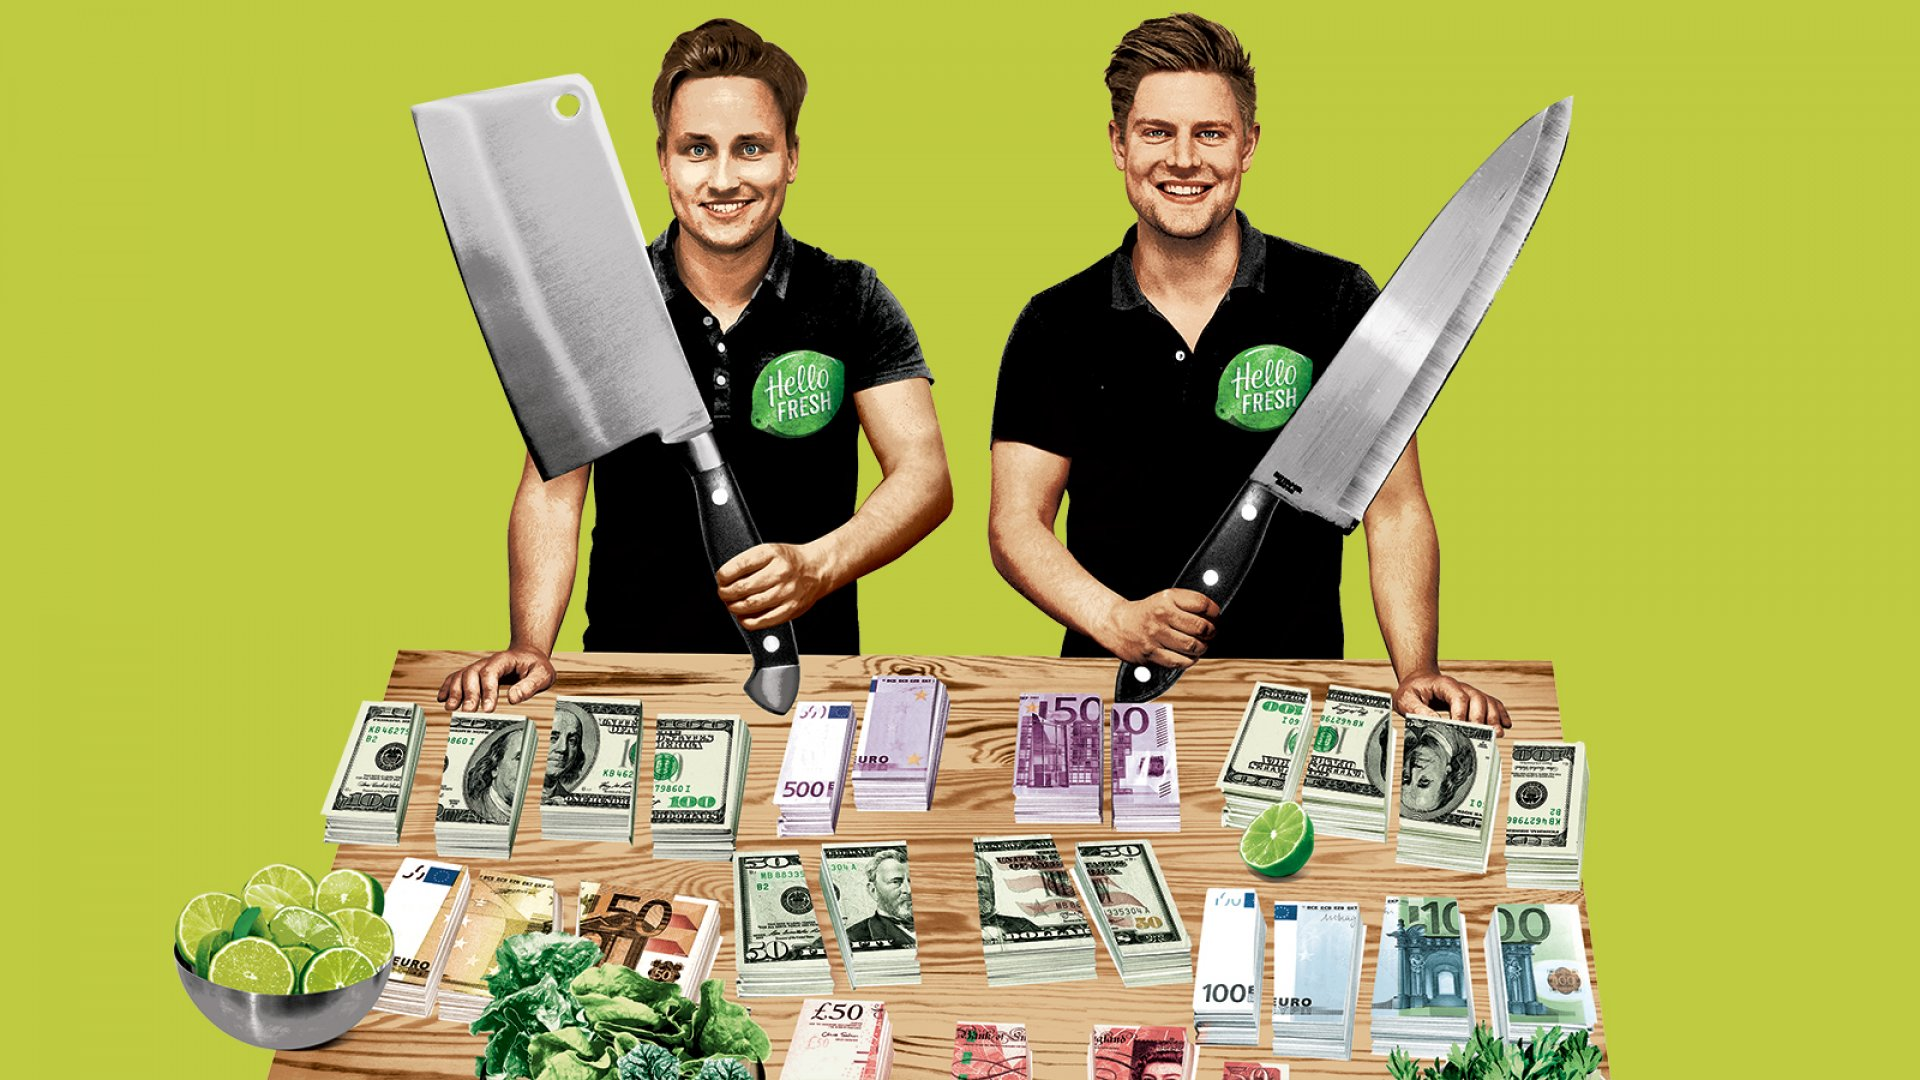 Dominik Richter (left) and Thomas Griesel built a $2.3 billion public company funded by hundreds of millions of dollars, but critics say the economics of meal kits aren't sustainable.